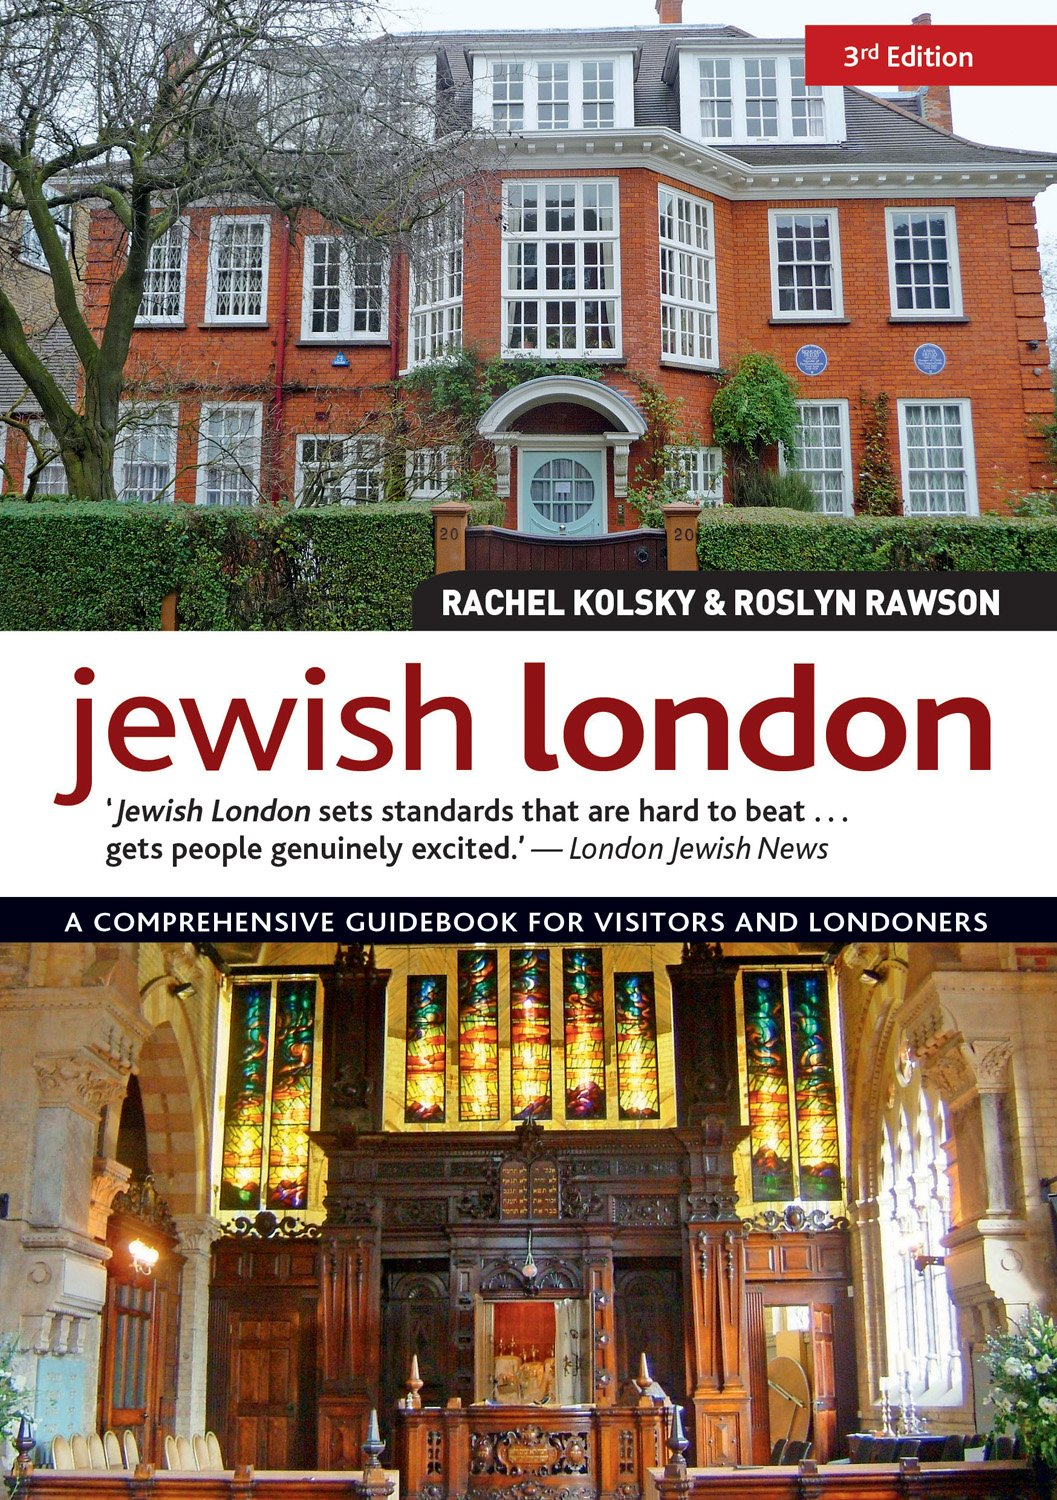 Download Jewish London, 3rd Edition: A Comprehensive Guidebook for Visitors and Londoners (IMM Lifestyle Books) Art, Synagogues, Memorials, Cafes, Walks, & Jewish History with Street Maps and Over 200 Photos pdf epub